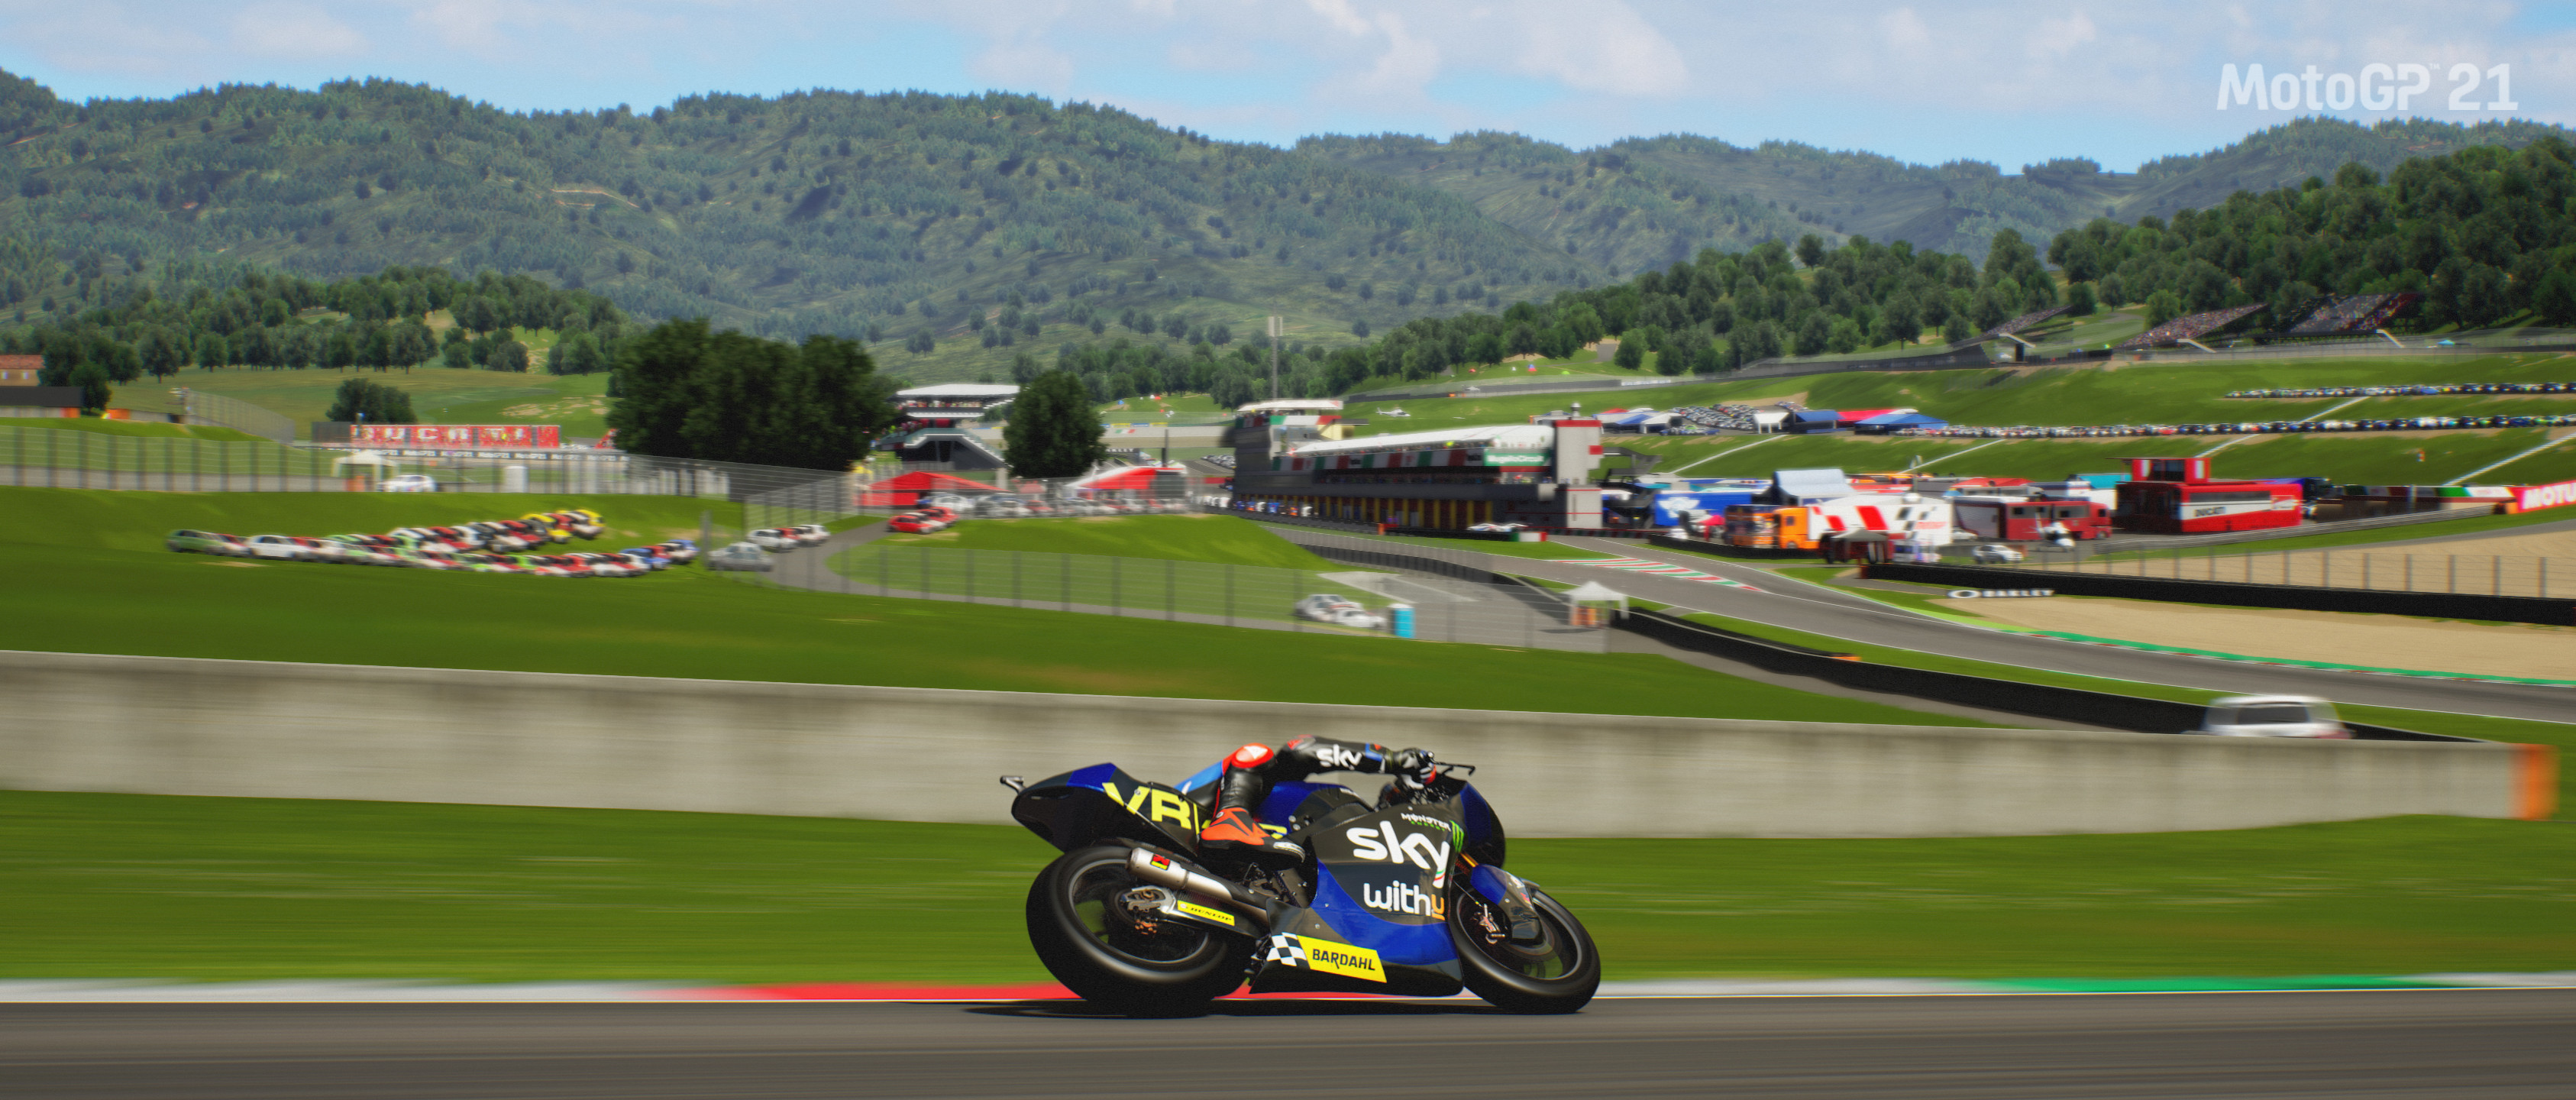 Picture of the Kalex engineering Moto 2 driven by Marco Bezzecchi